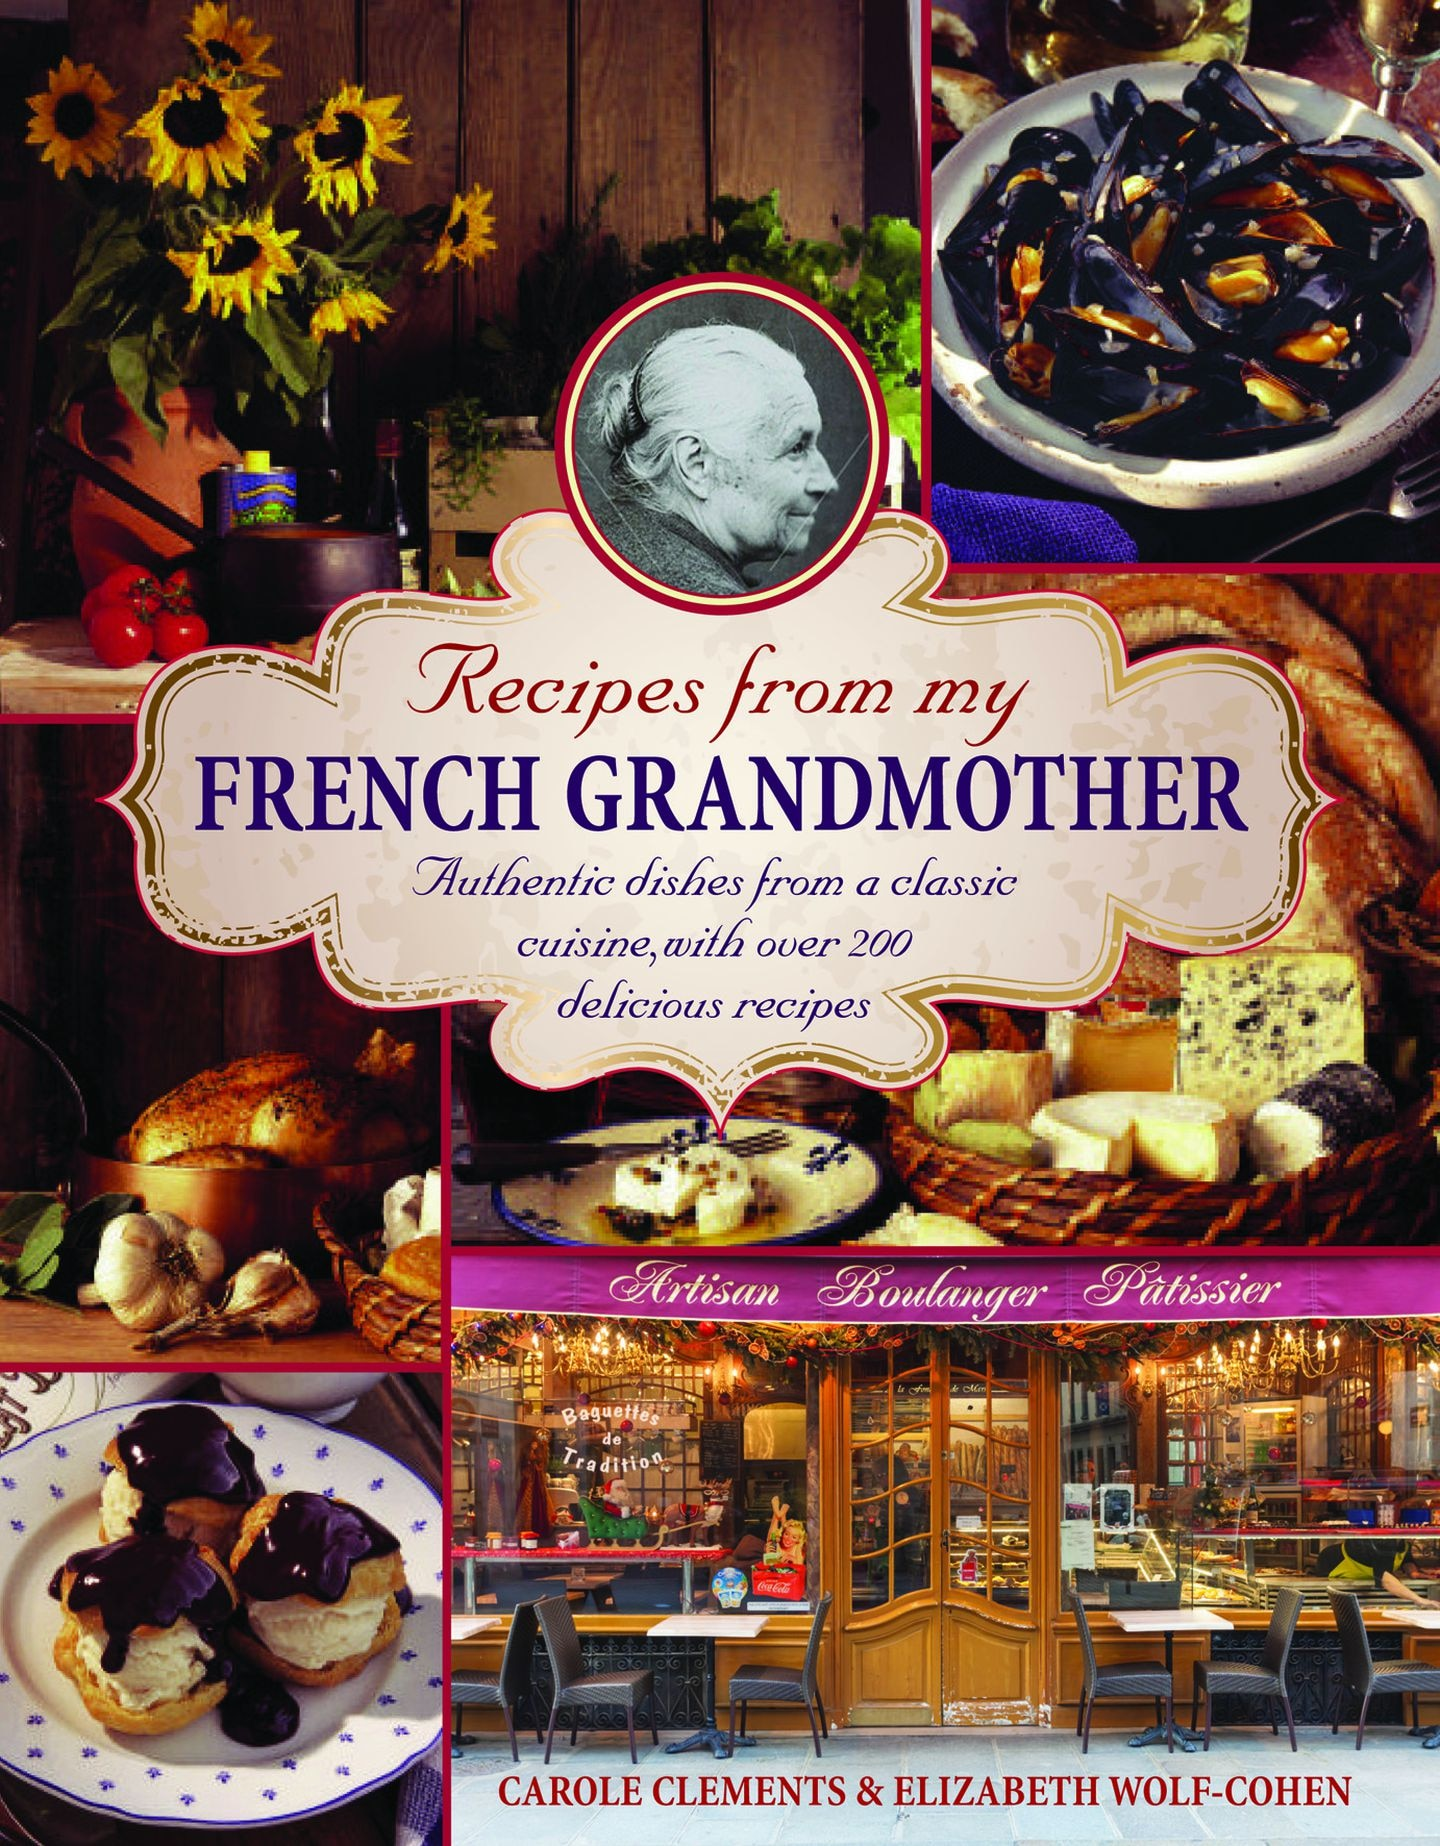 French Grandmother' dishes are hearty, fuss-free - The